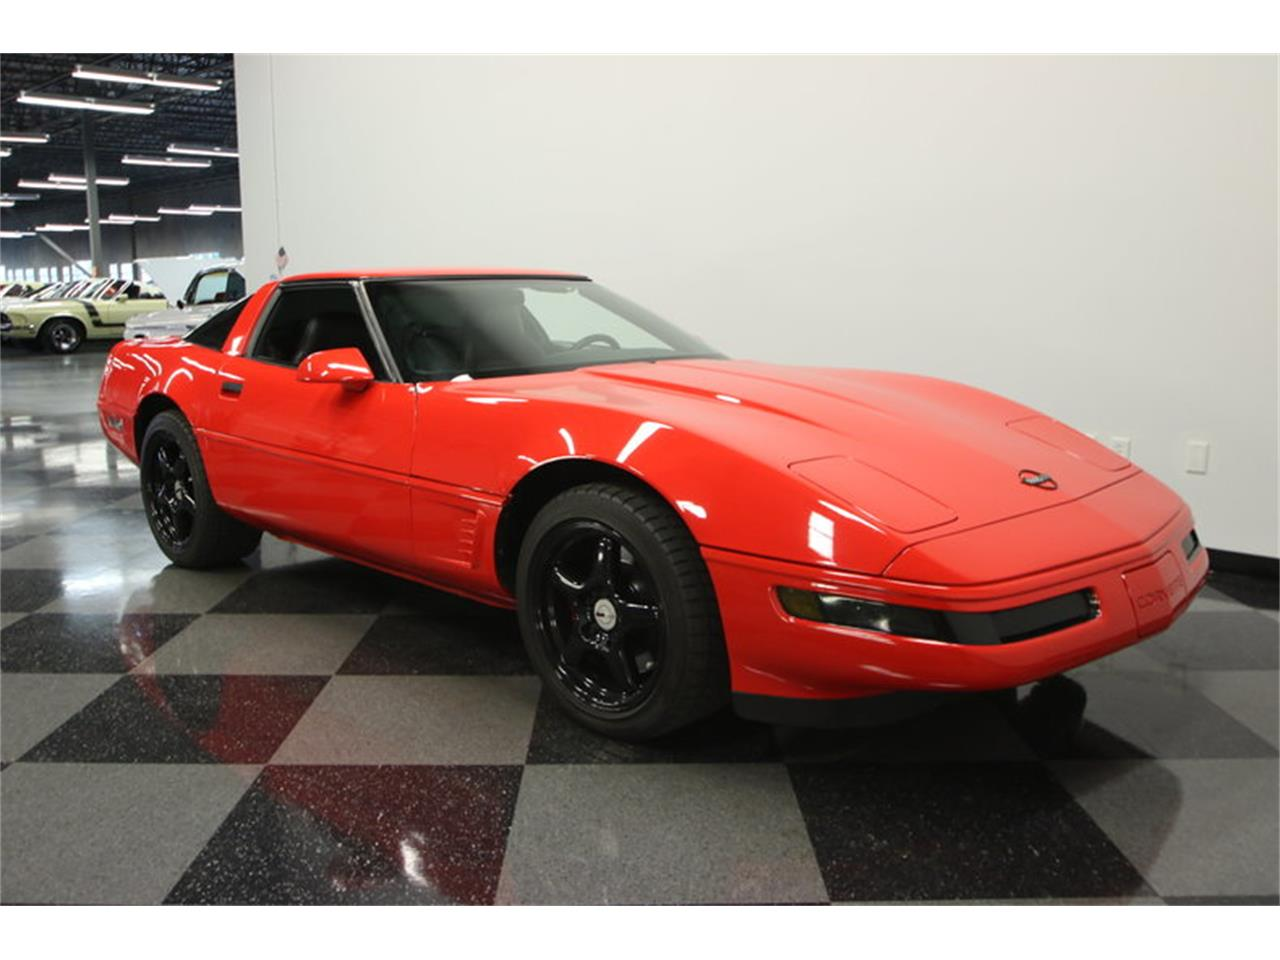 Large Picture of 1995 Corvette located in Lutz Florida - $15,995.00 Offered by Streetside Classics - Tampa - IURO